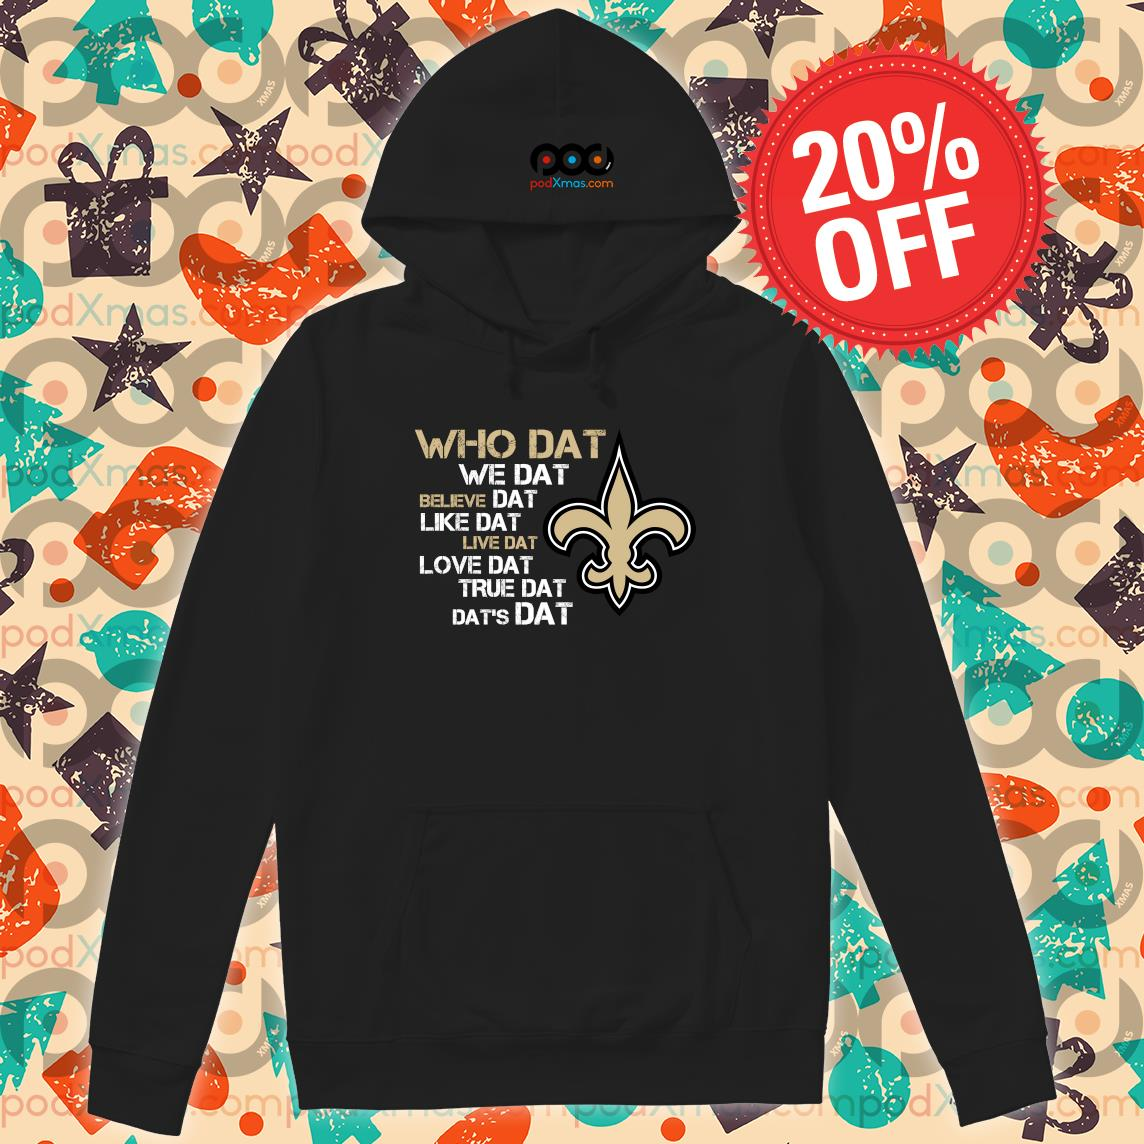 New Orleans Saints who dat we dat believe dat dat's dat s Hoodie PODxmas den